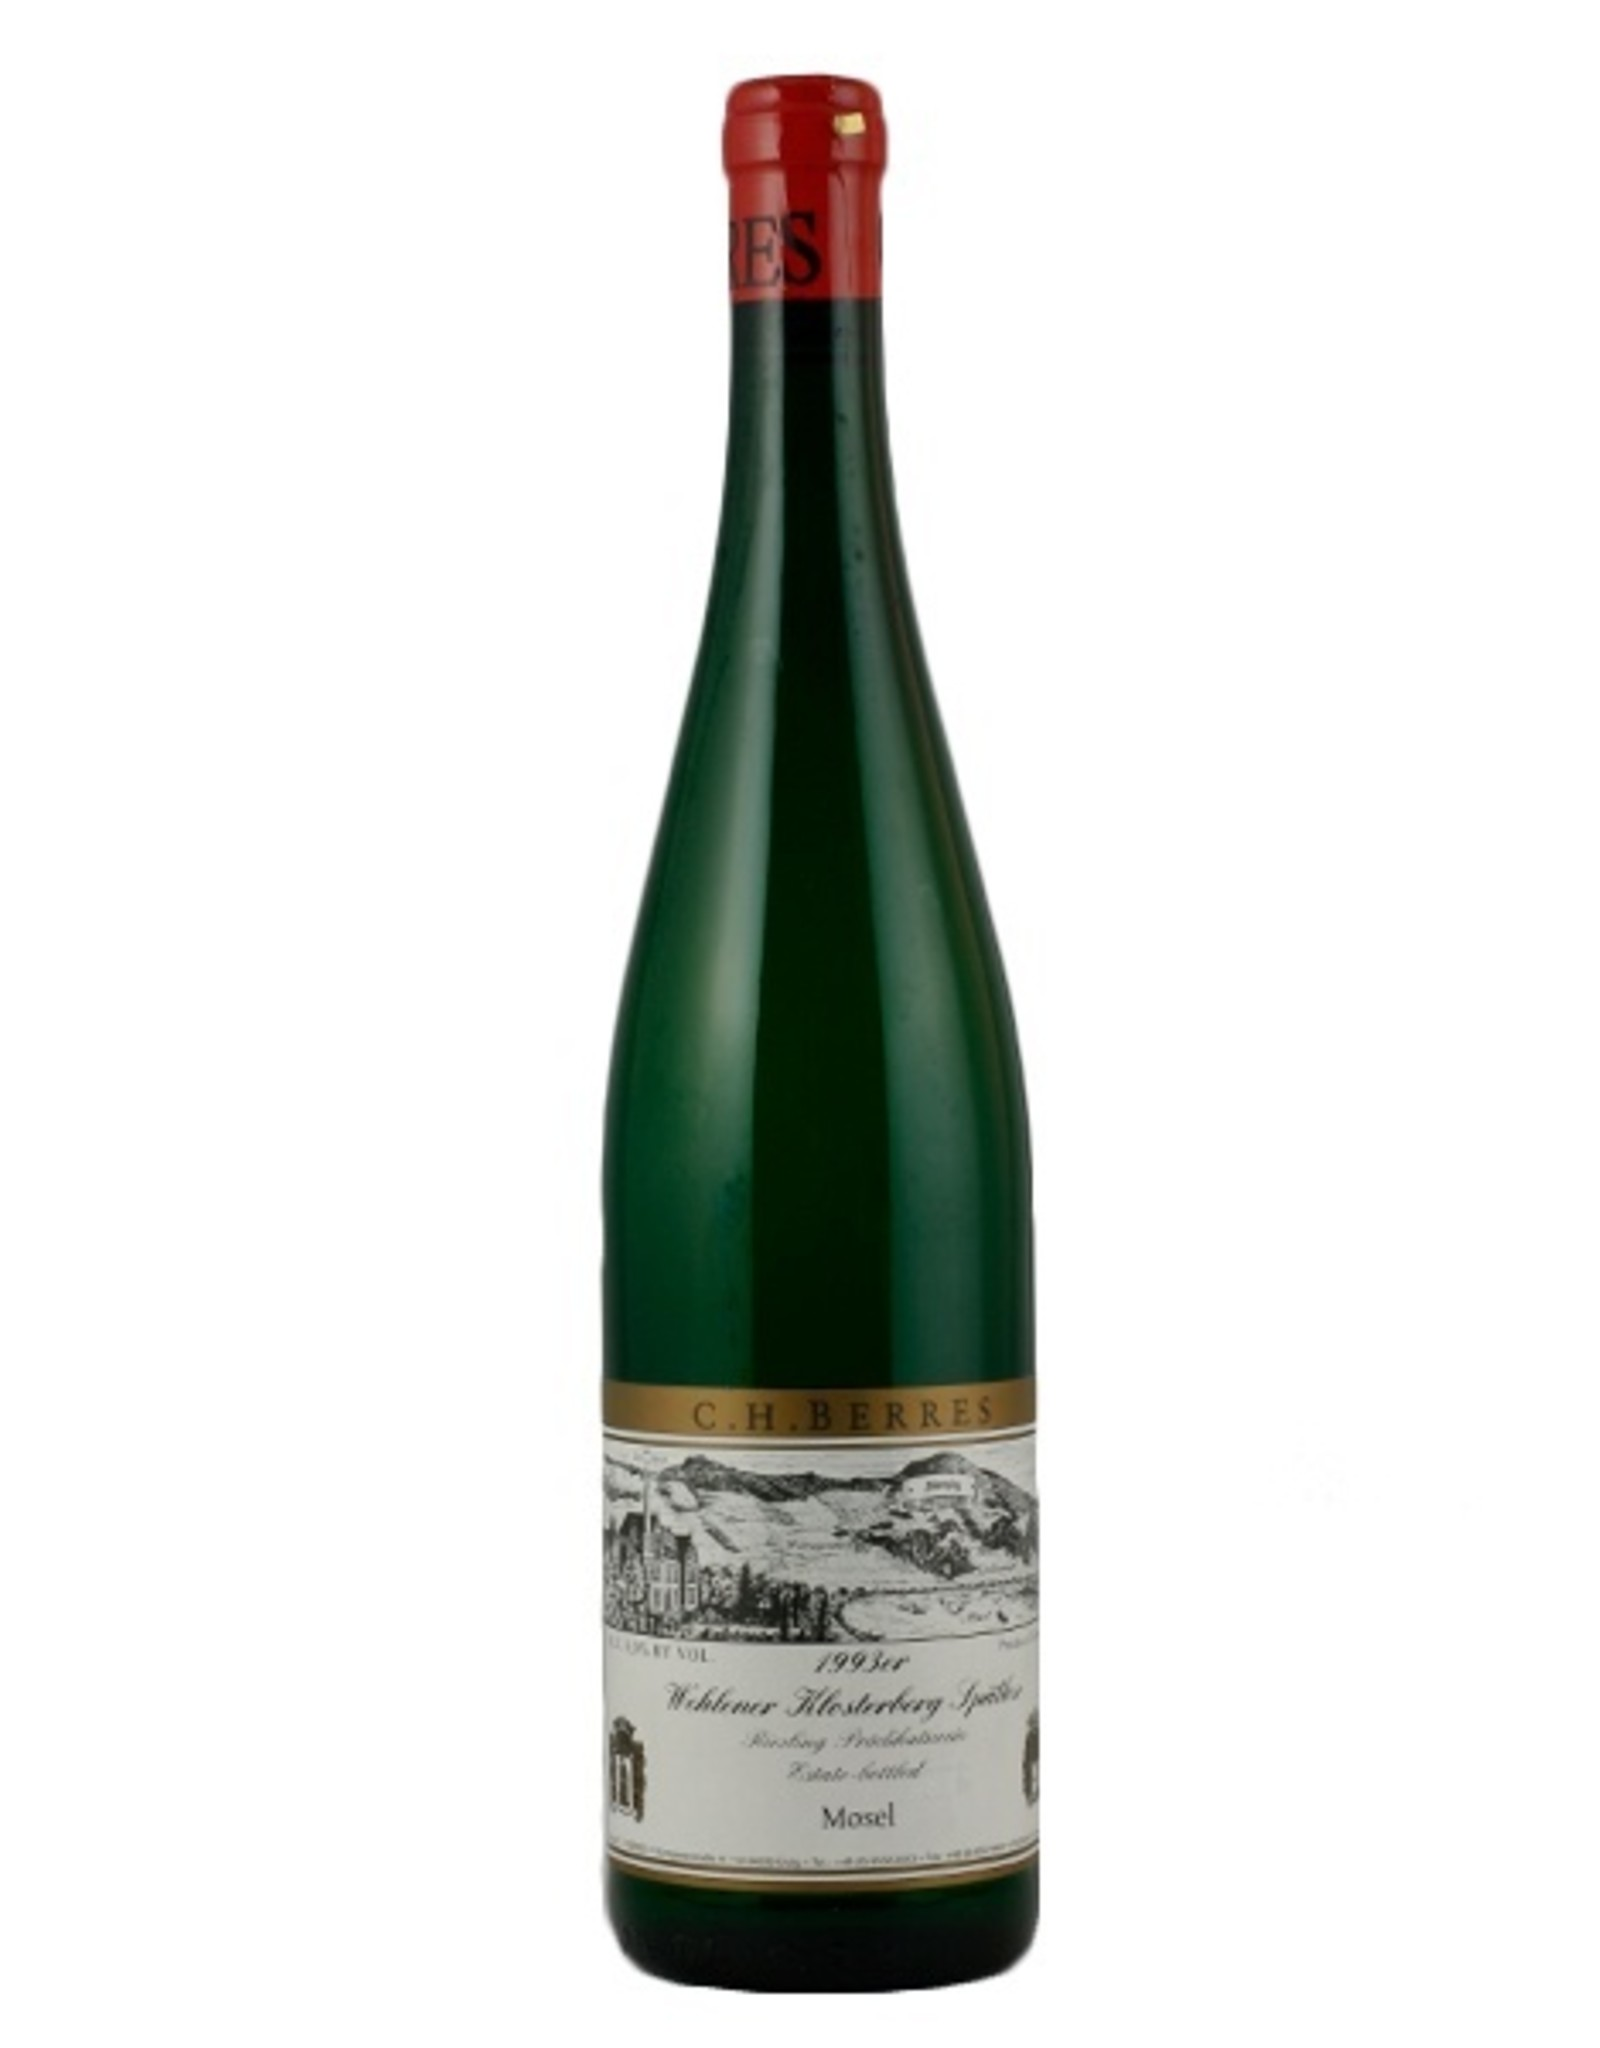 White Wine 1993, C.H. Berres Auslese,  Riesling, Urzinger Goldwingert, Mosel, Germany, 13.5% Alc,